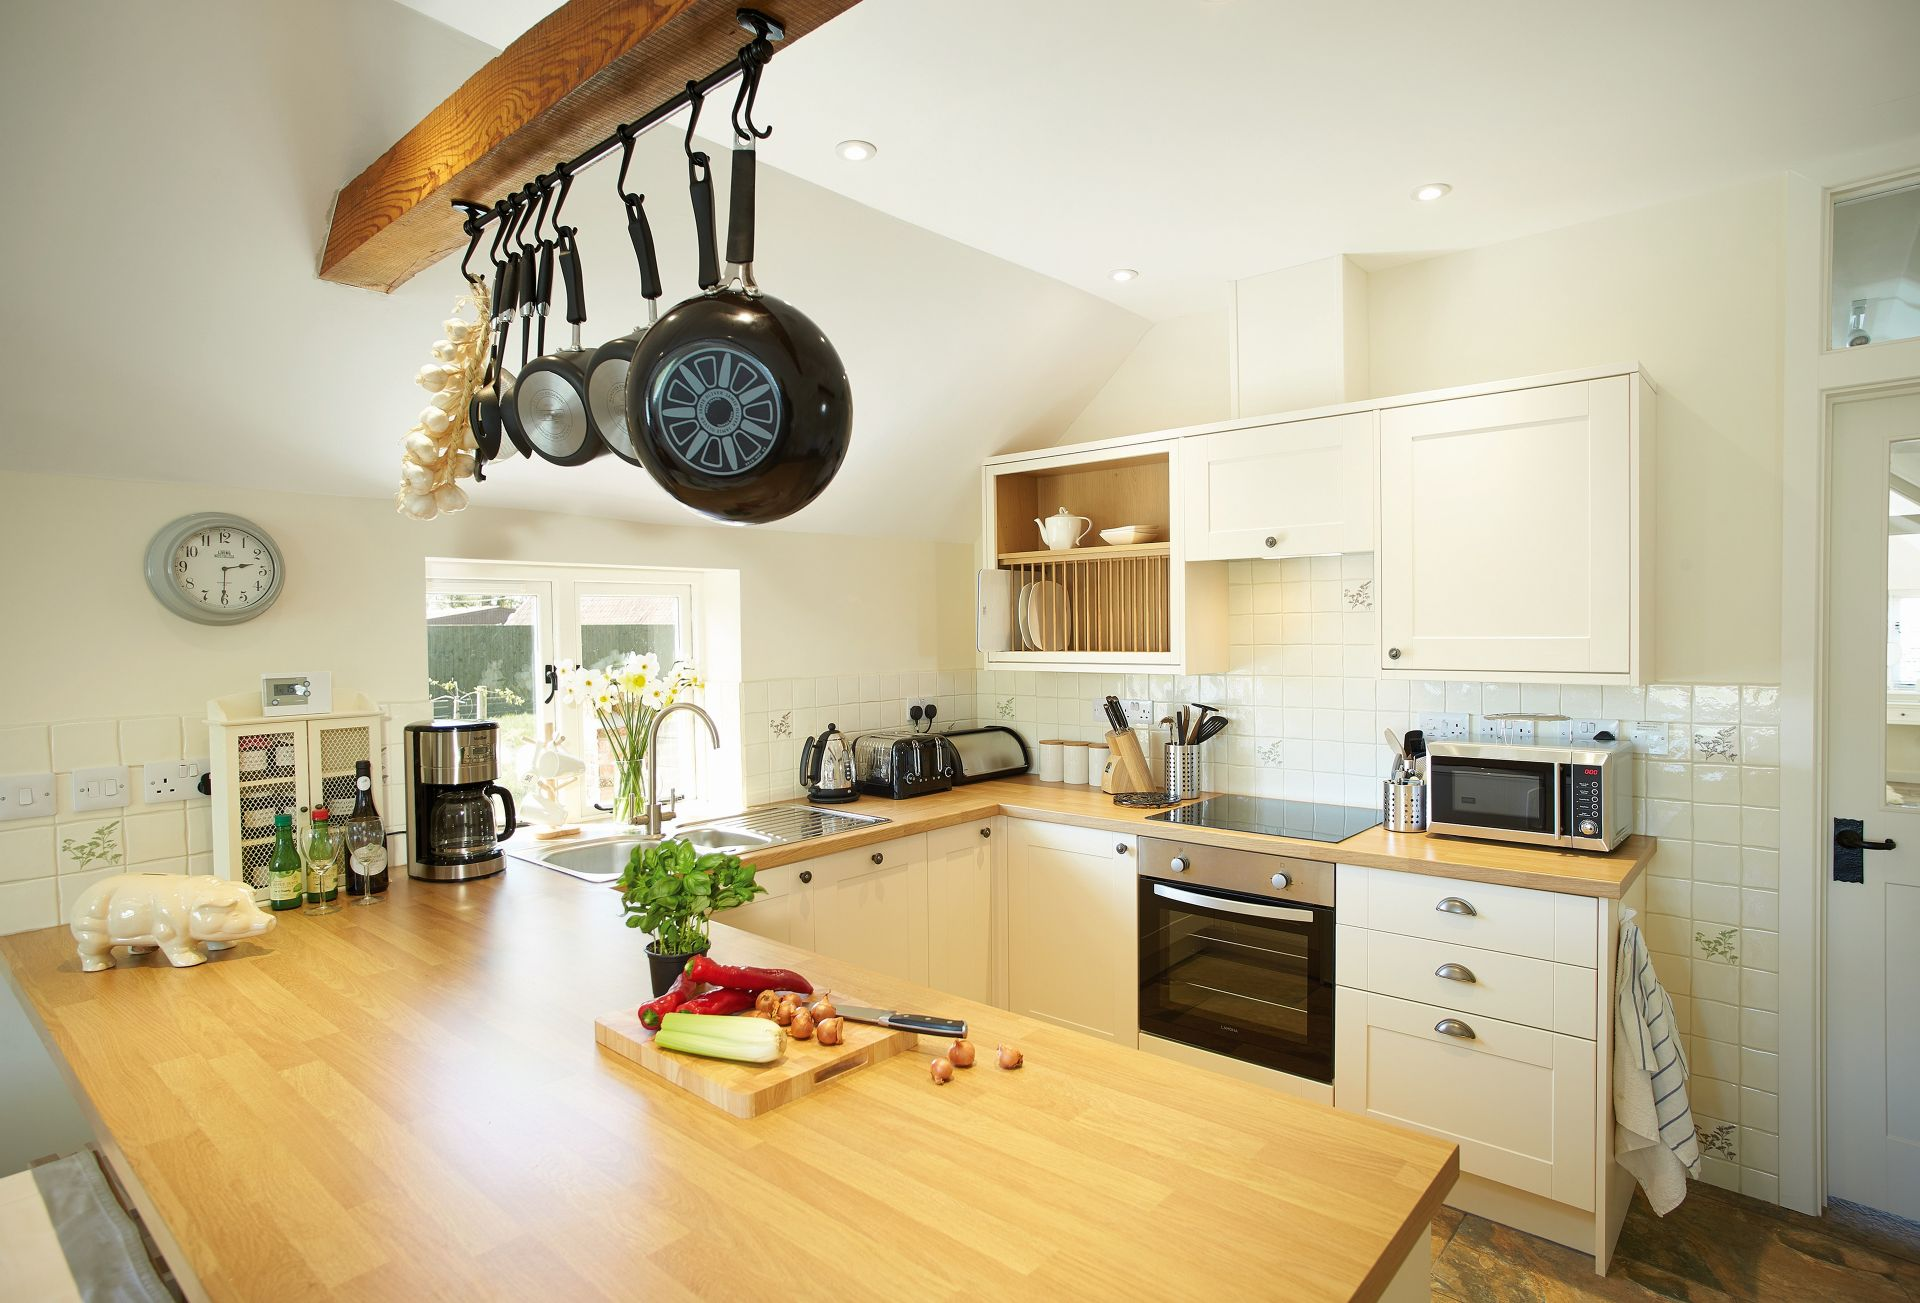 Modern, open plan fully fitted kitchen